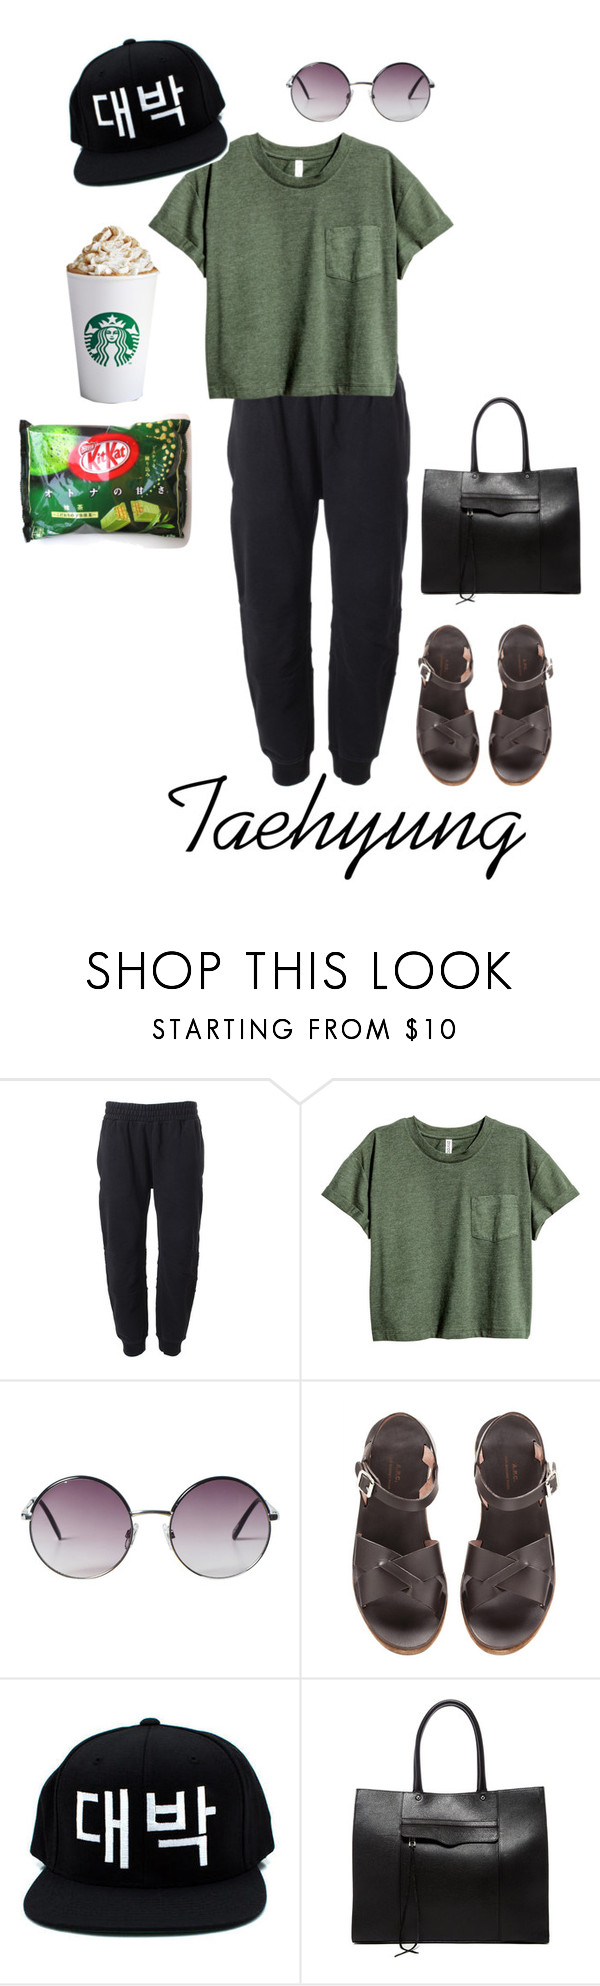 """Casual: Taehyung"" by bts-inspired ❤ liked on Polyvore featuring adidas Originals, Monki, A.P.C. and Rebecca Minkoff"